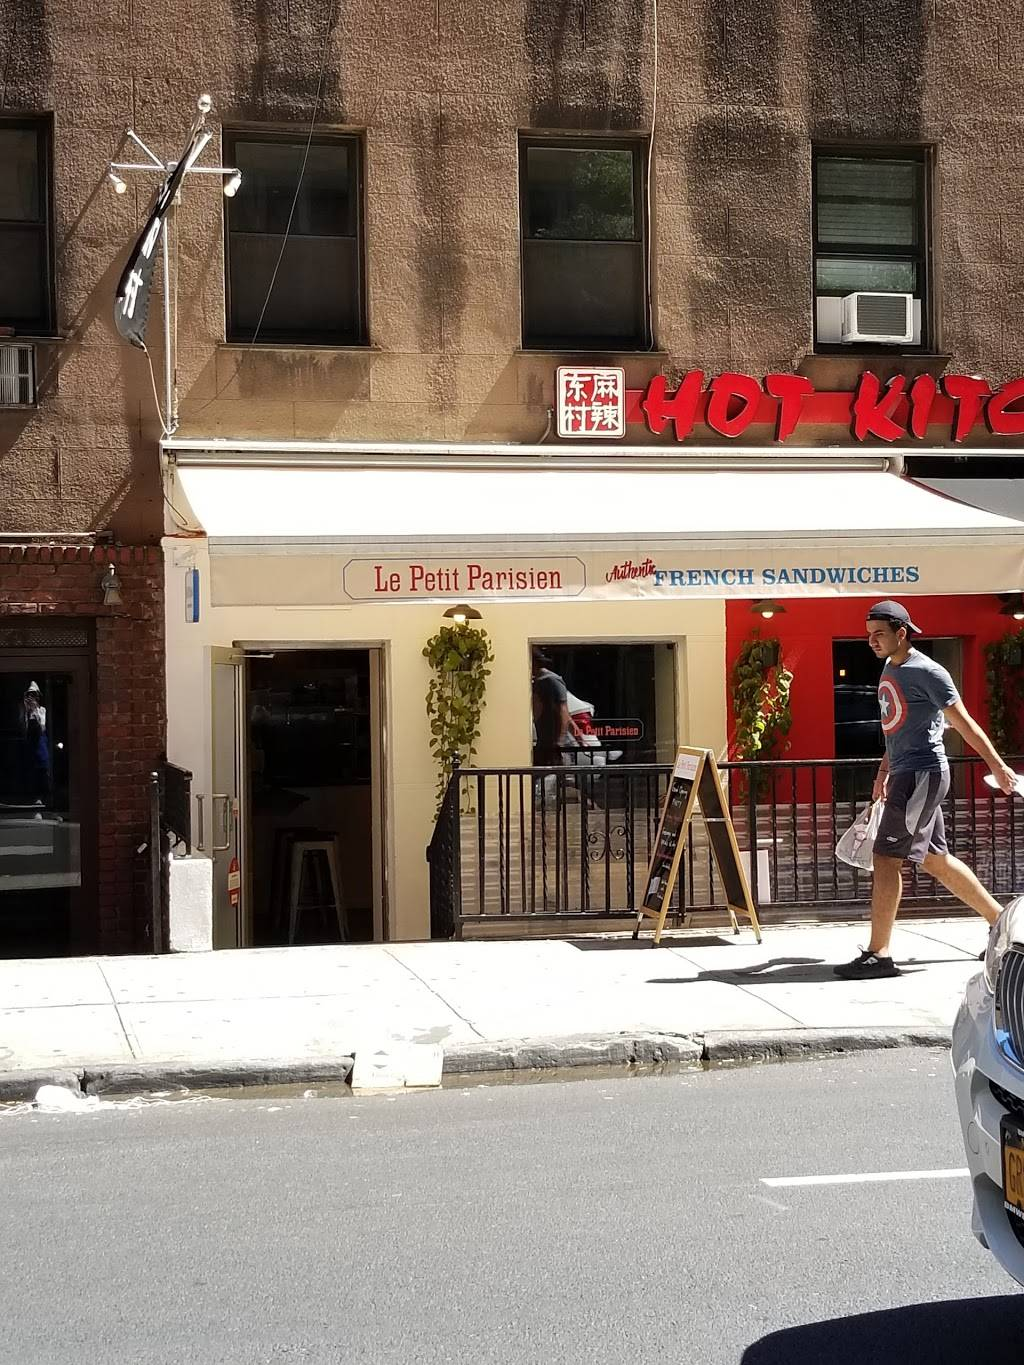 Le Petit Parisien | restaurant | 251 E 53rd St, New York, NY 10022, USA | 9173883039 OR +1 917-388-3039